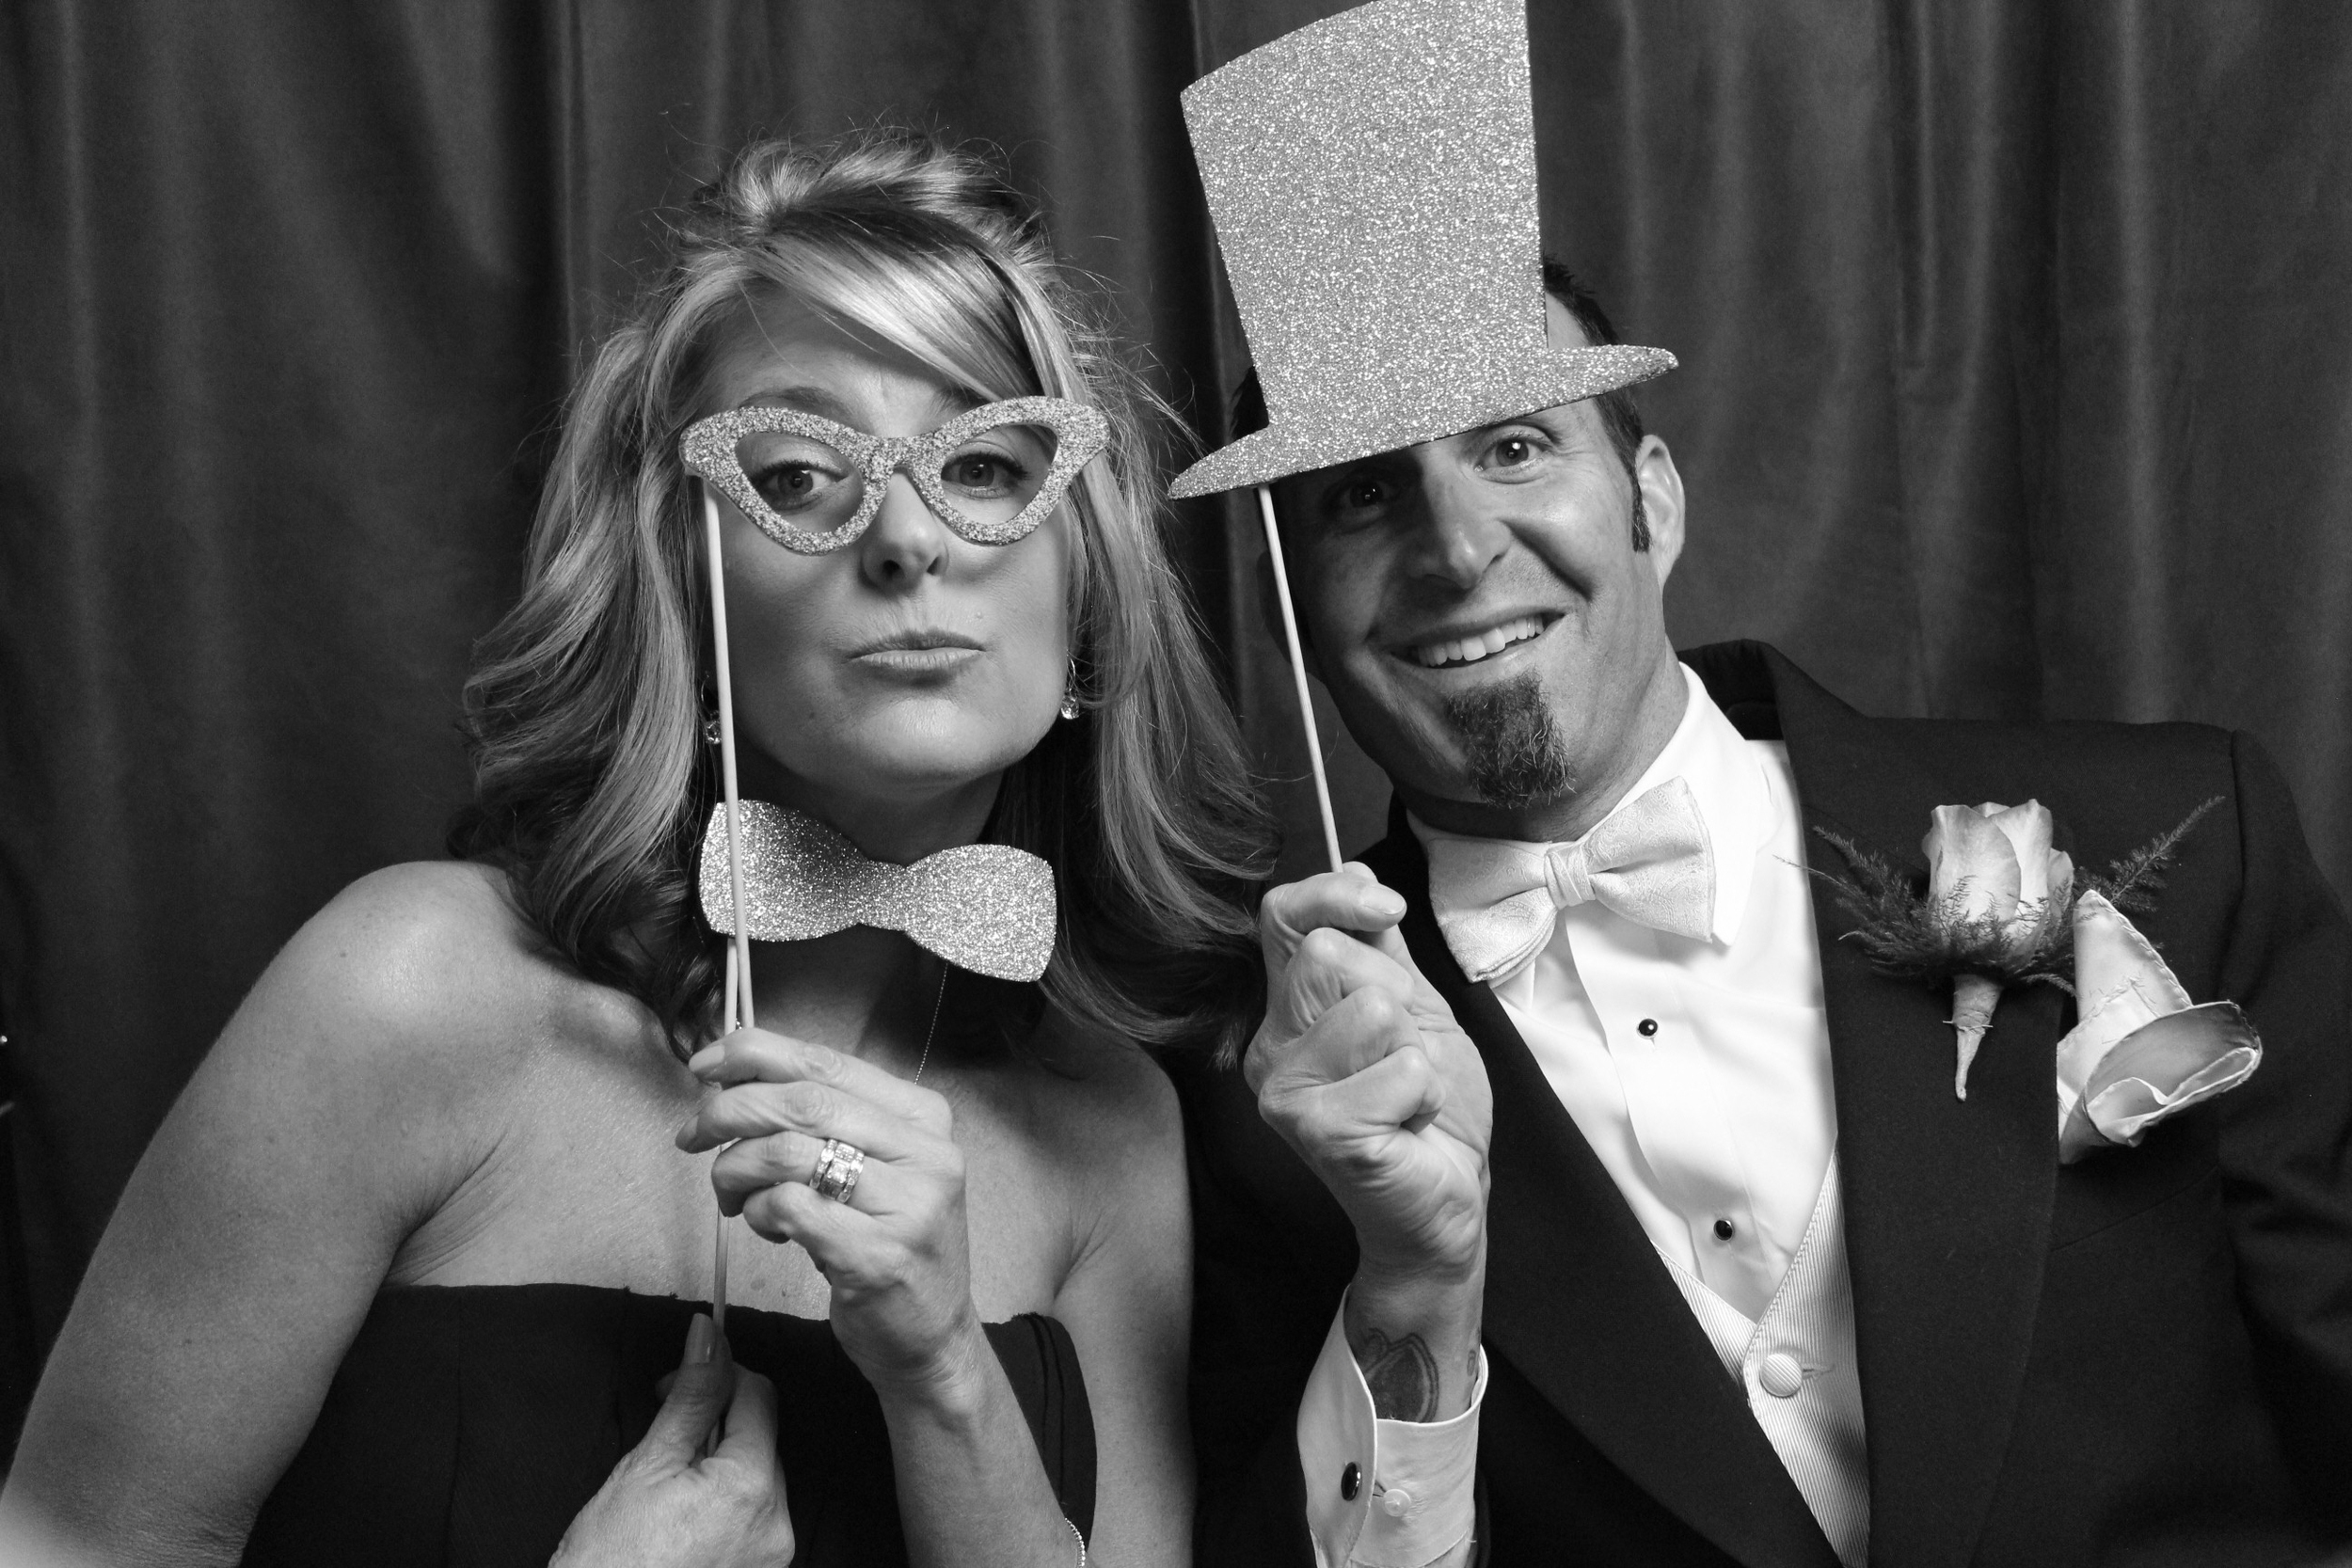 Ann-Marie & Maurice Photo Booth Wedding (150).jpg